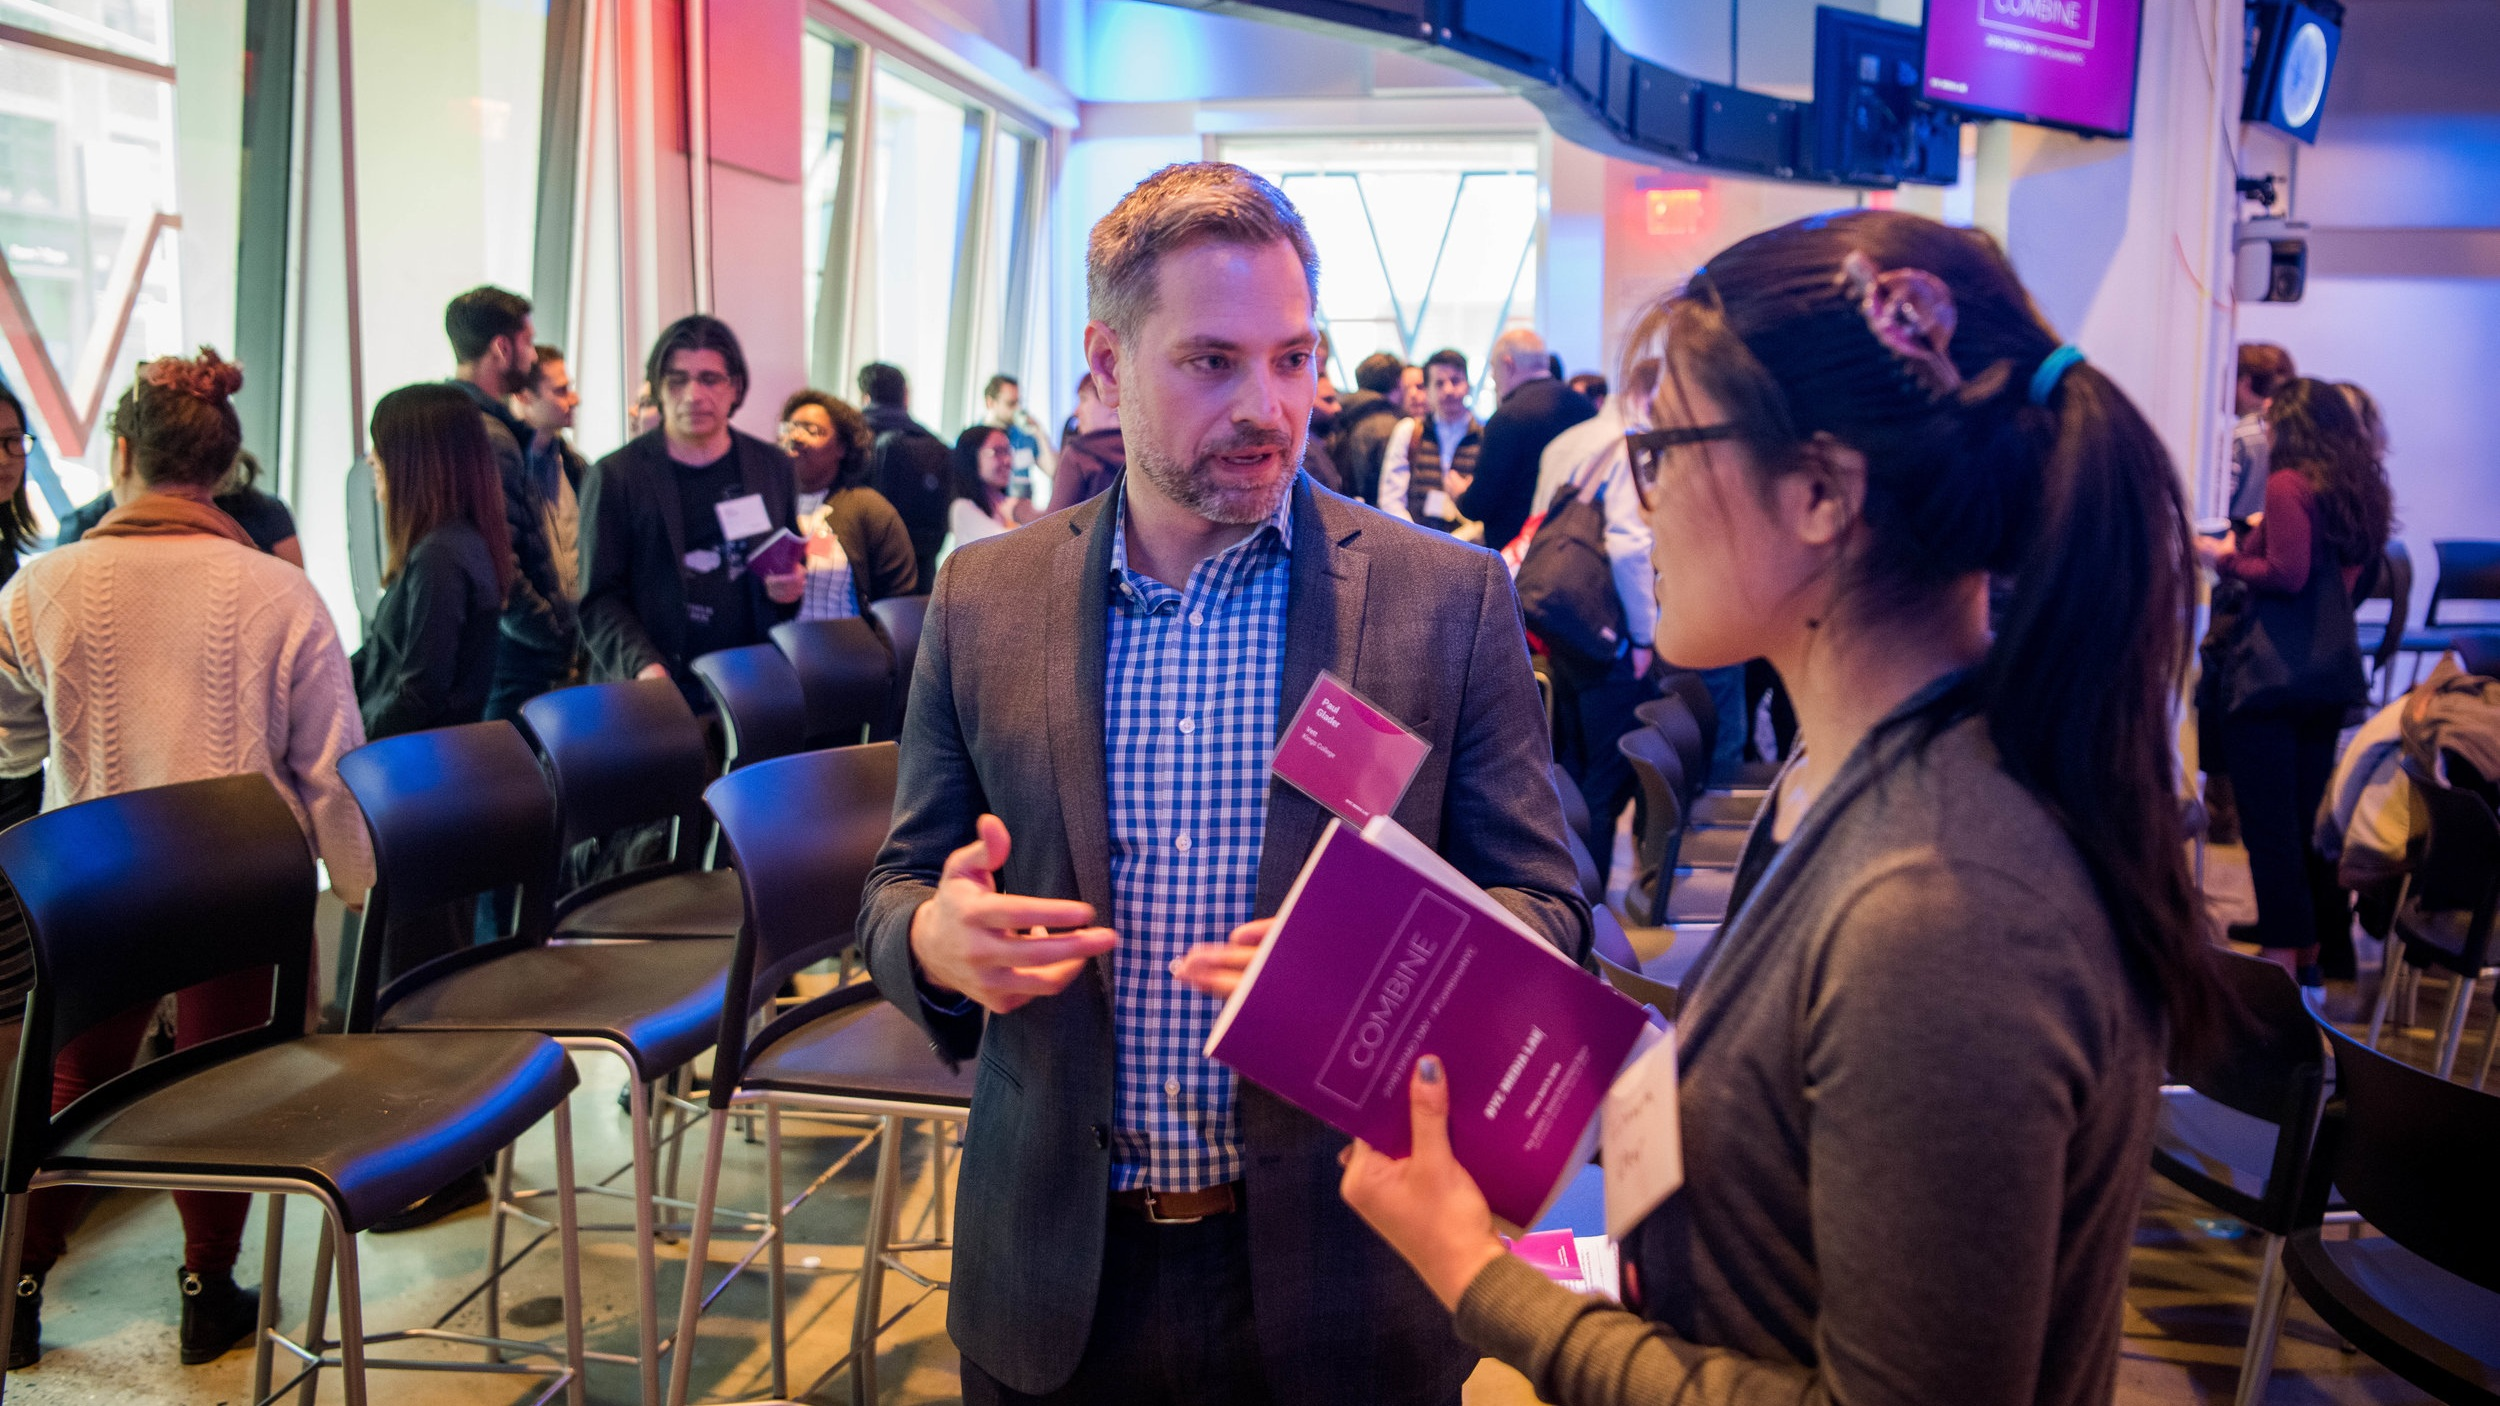 Create Opportunities - Connect Combine teams to additional resources (potential first customers, VC introductions, pitch competitions, later-stage accelerator programs, etc) in NYC's digital media and technology ecosystem.